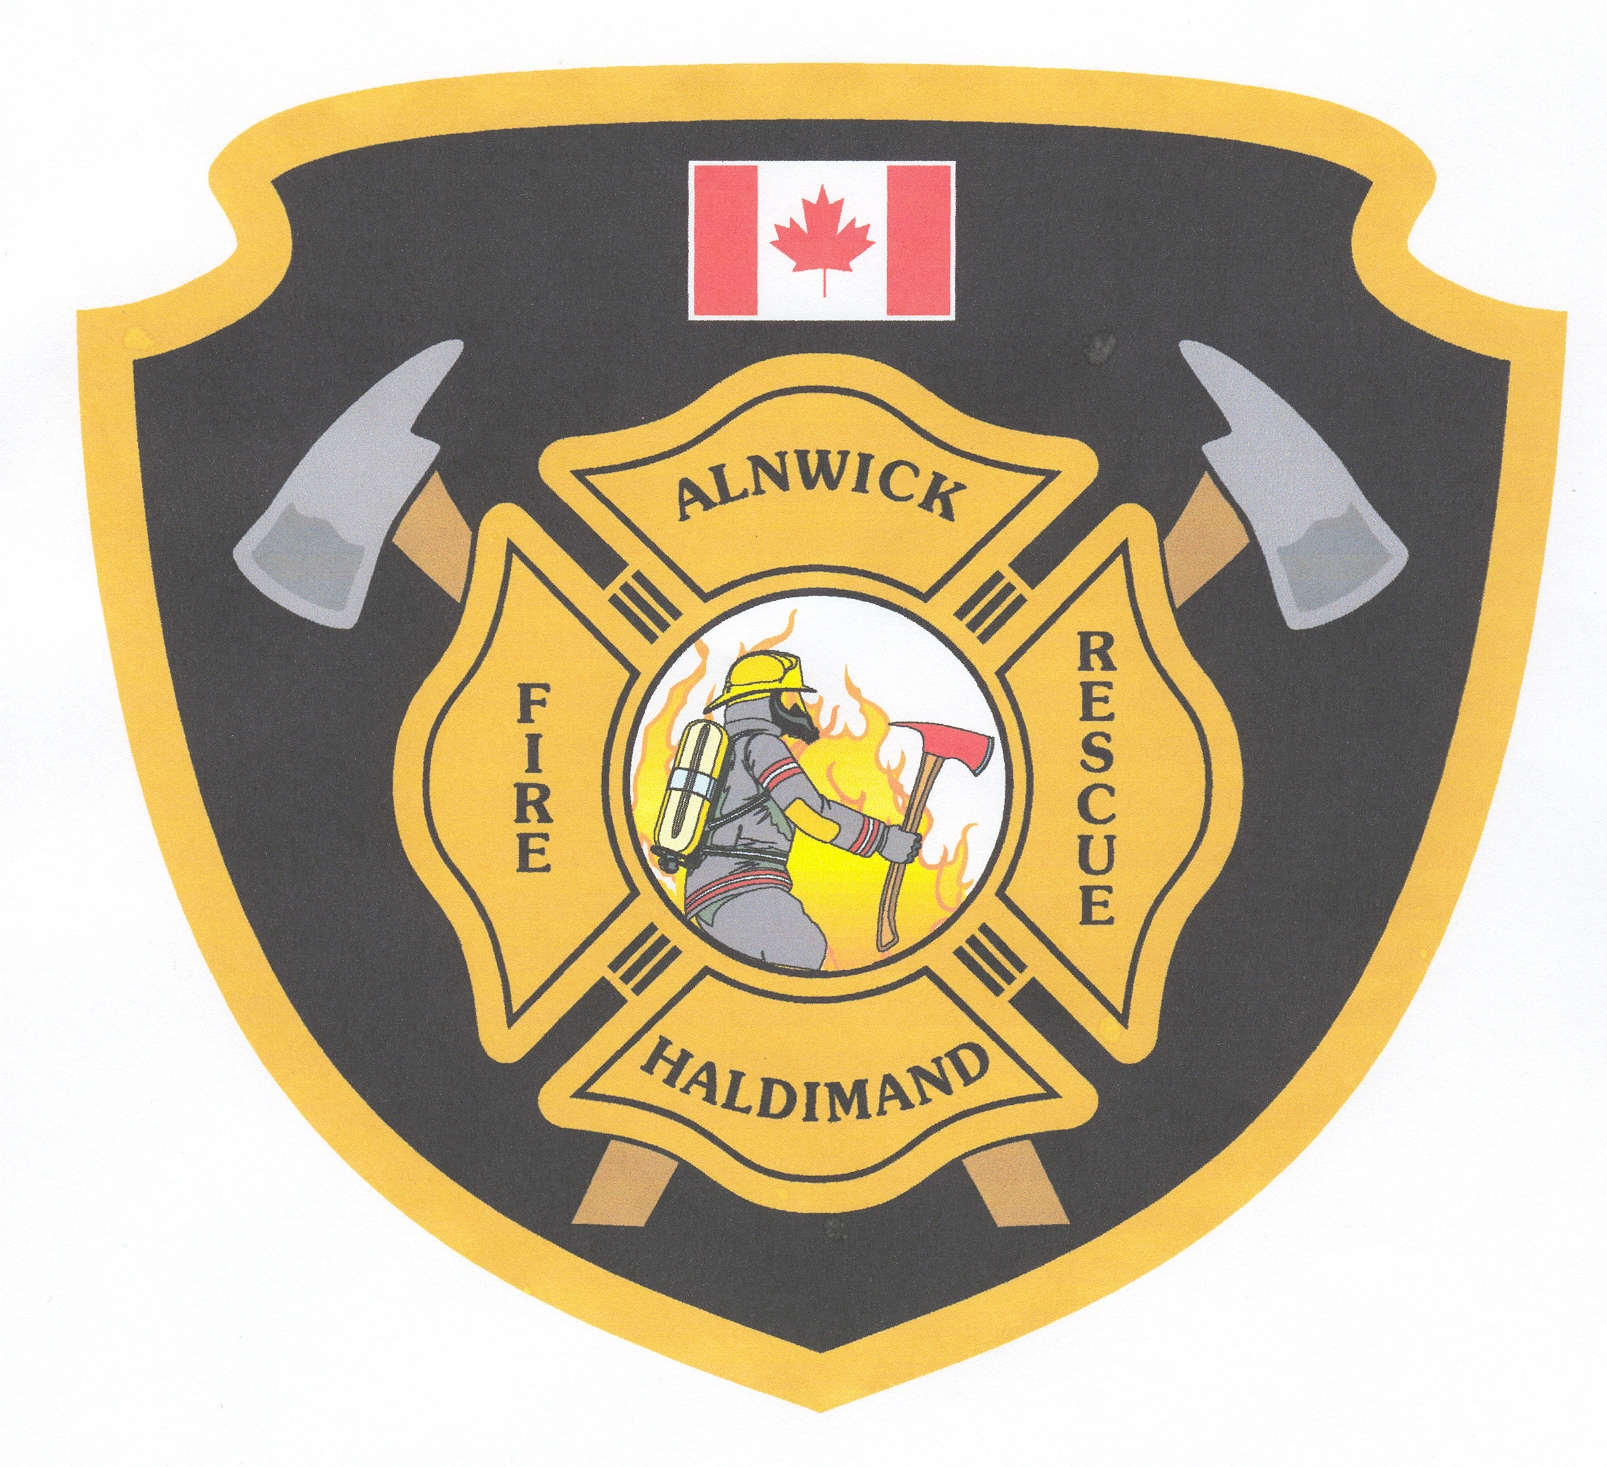 Alnwick Haldimand Fire Rescue Logo